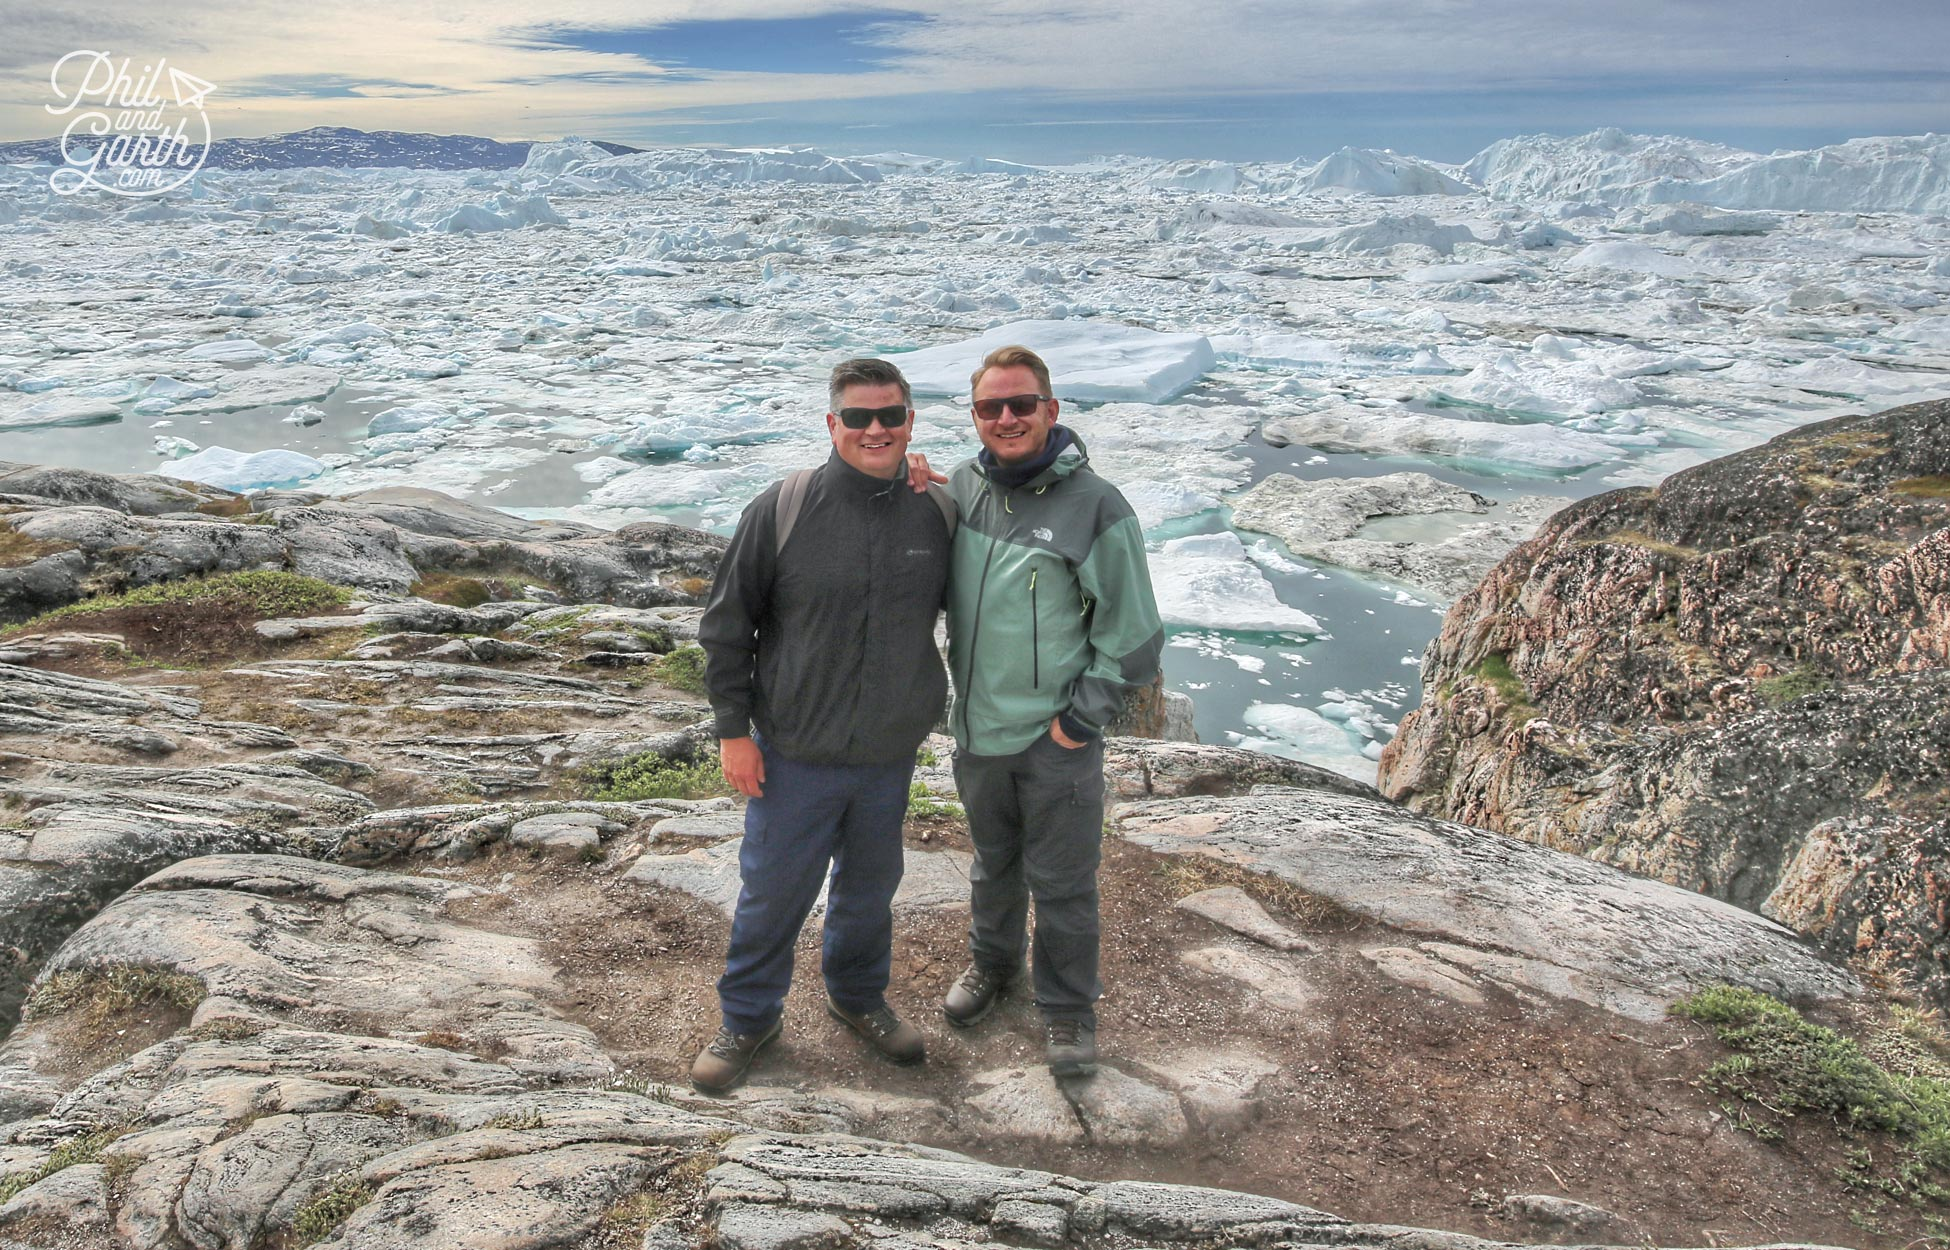 Phil and Garth's Top 5 Ilulissat Tips